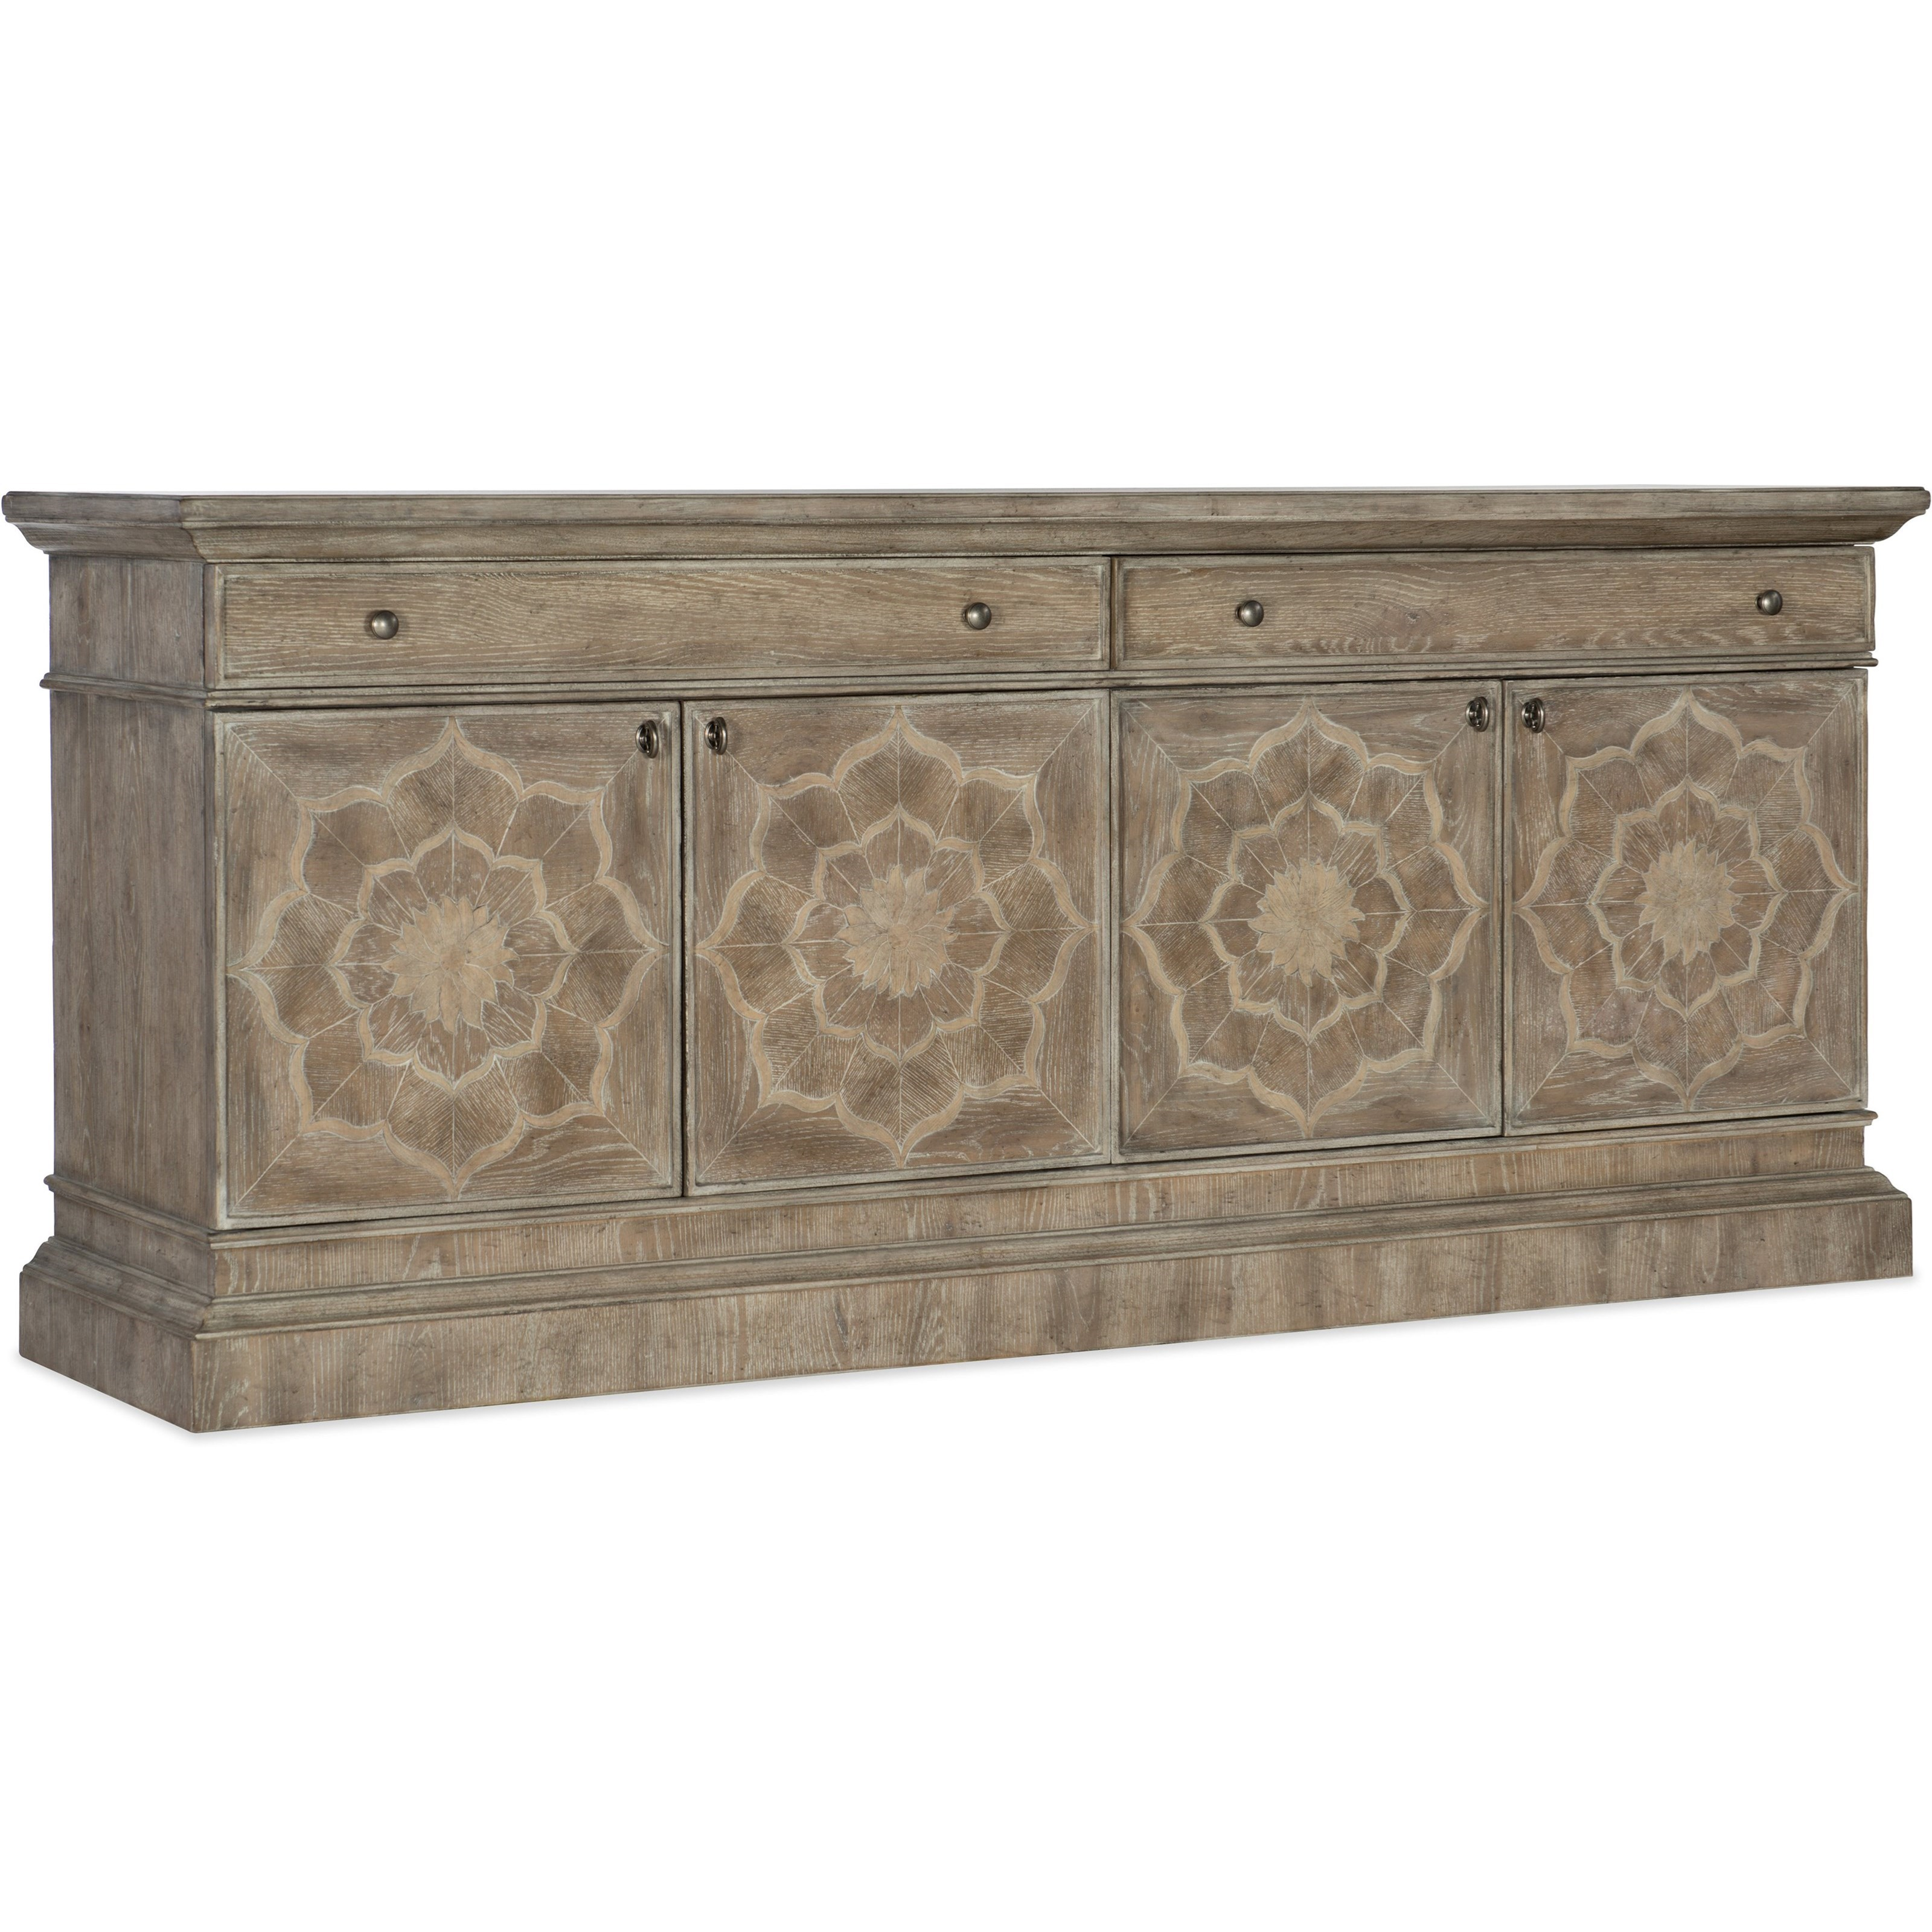 Dahlia Entertainment Console by Hooker Furniture at Miller Waldrop Furniture and Decor